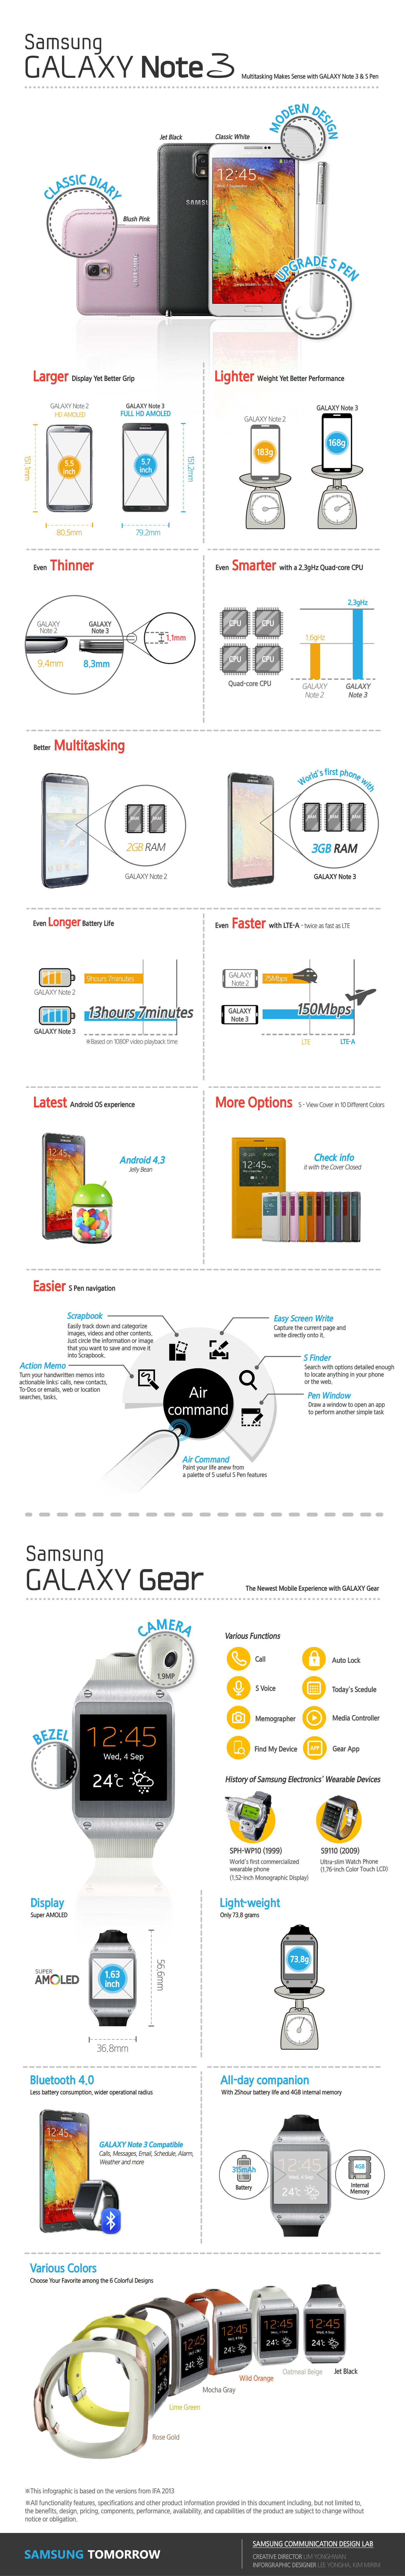 [Infographic] GALAXY NOTE 3 & GALAXY Gear